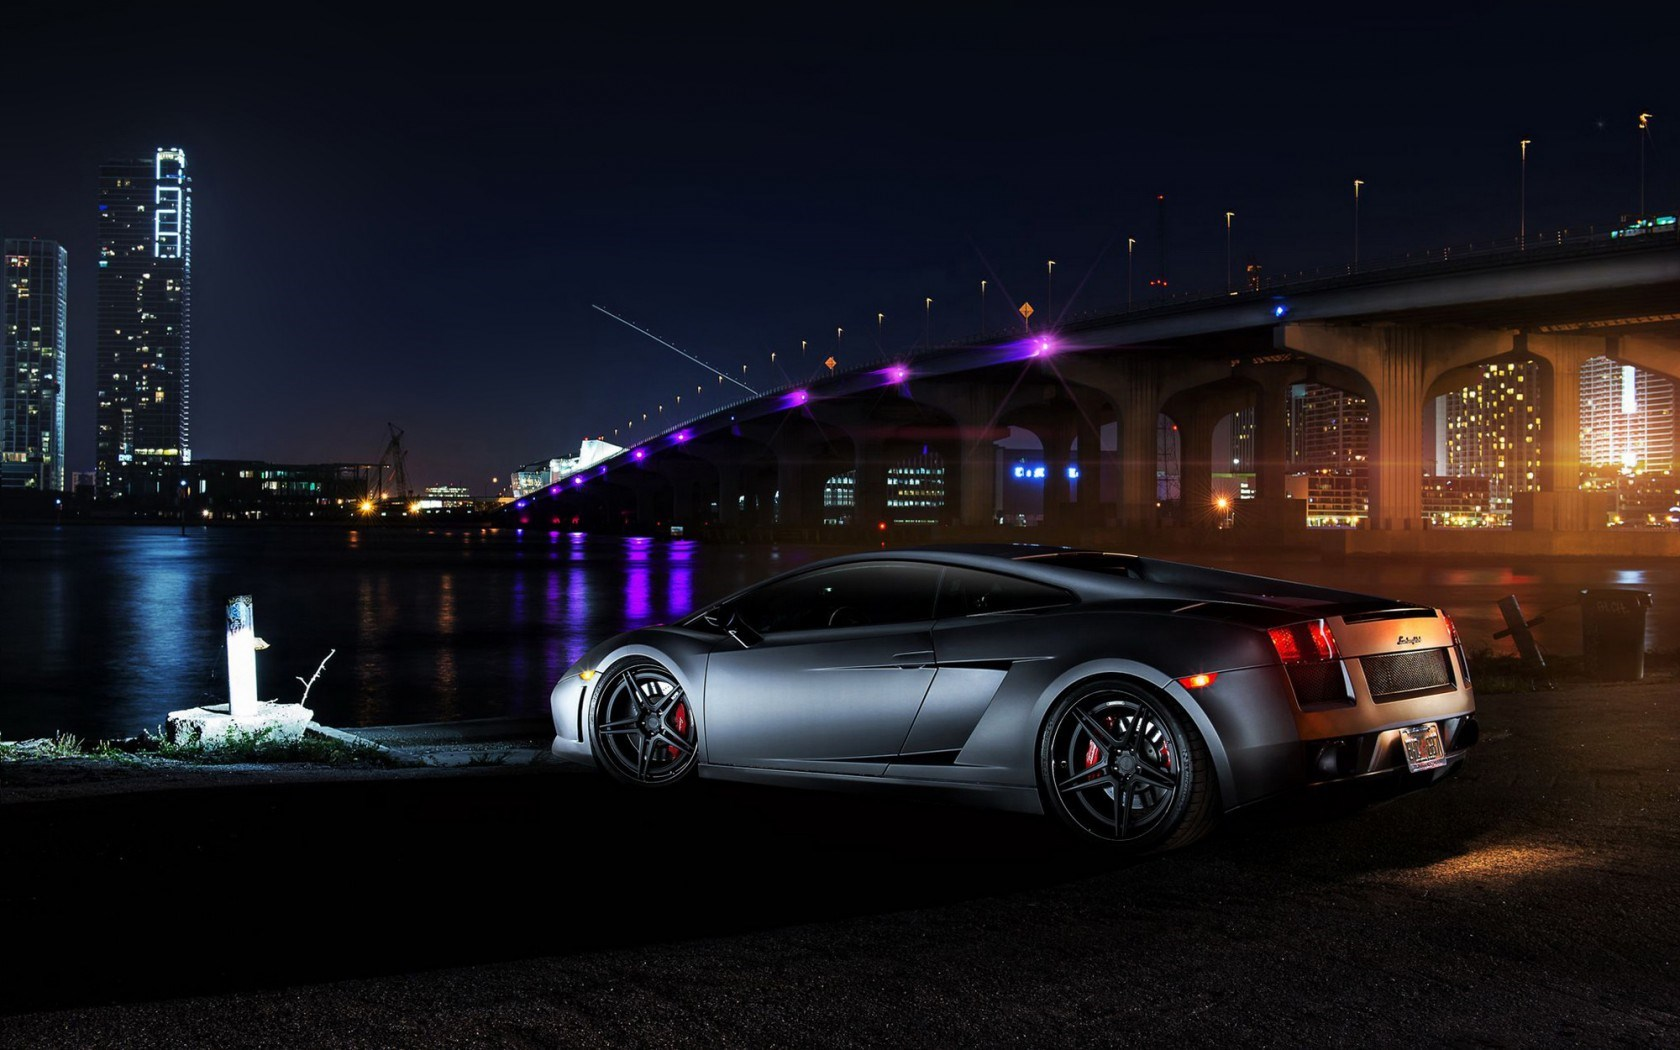 Wonderful Wallpaper Night Ferrari - lamborghini-gallardo-bridge-lights-night-1  Collection-765182.jpg